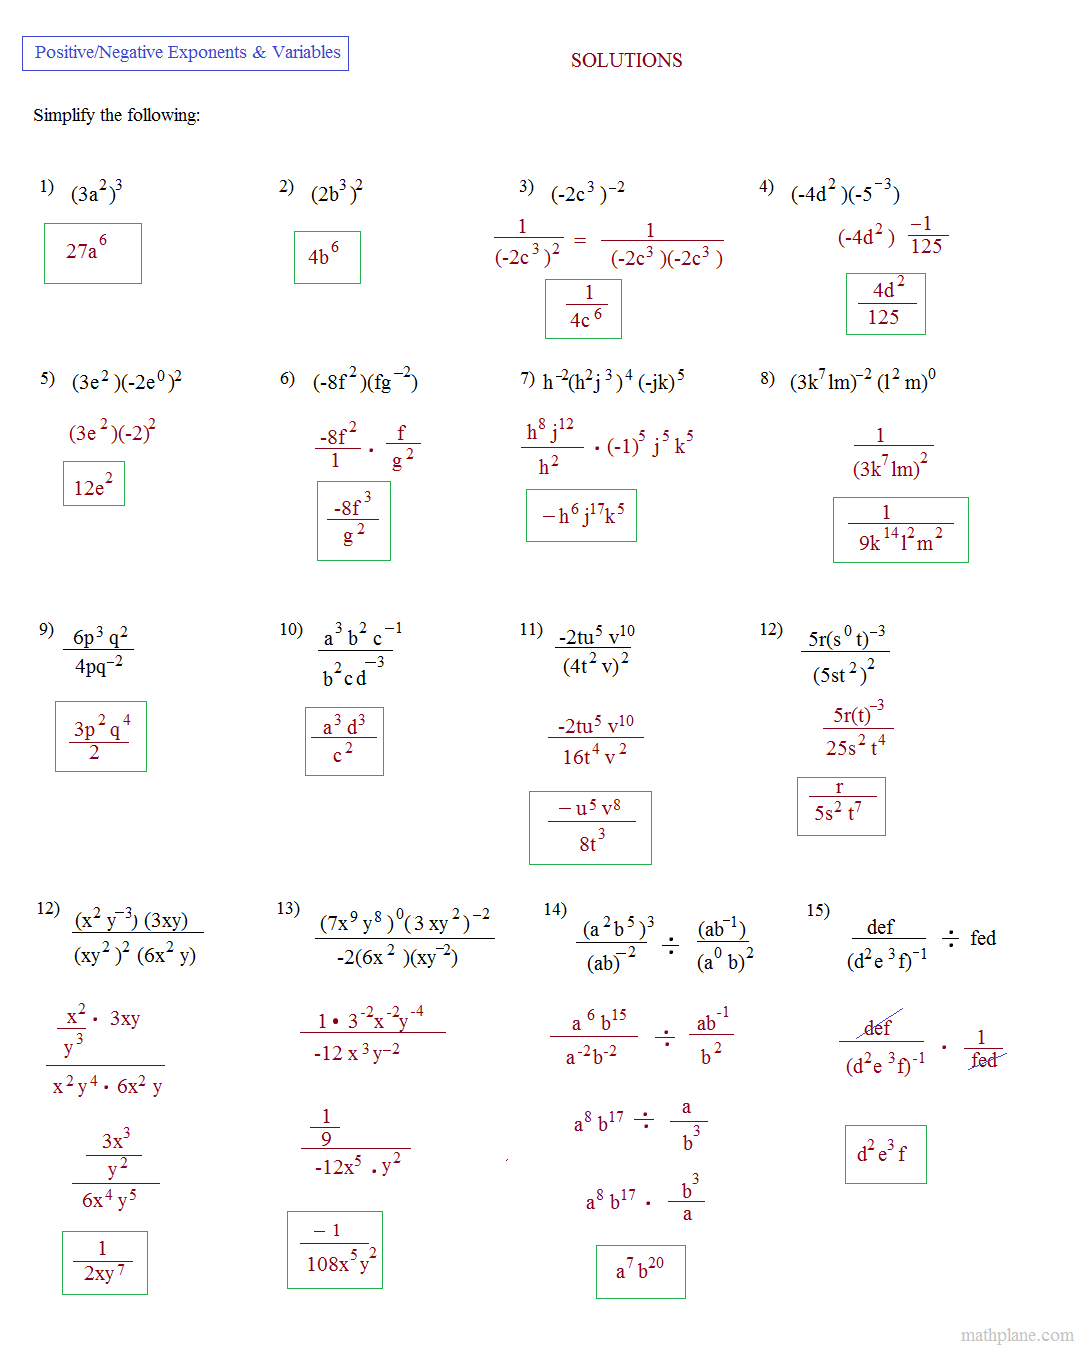 Workbooks simplifying polynomials worksheets : Math Plane - Simplifying Negative Exponents and Variables